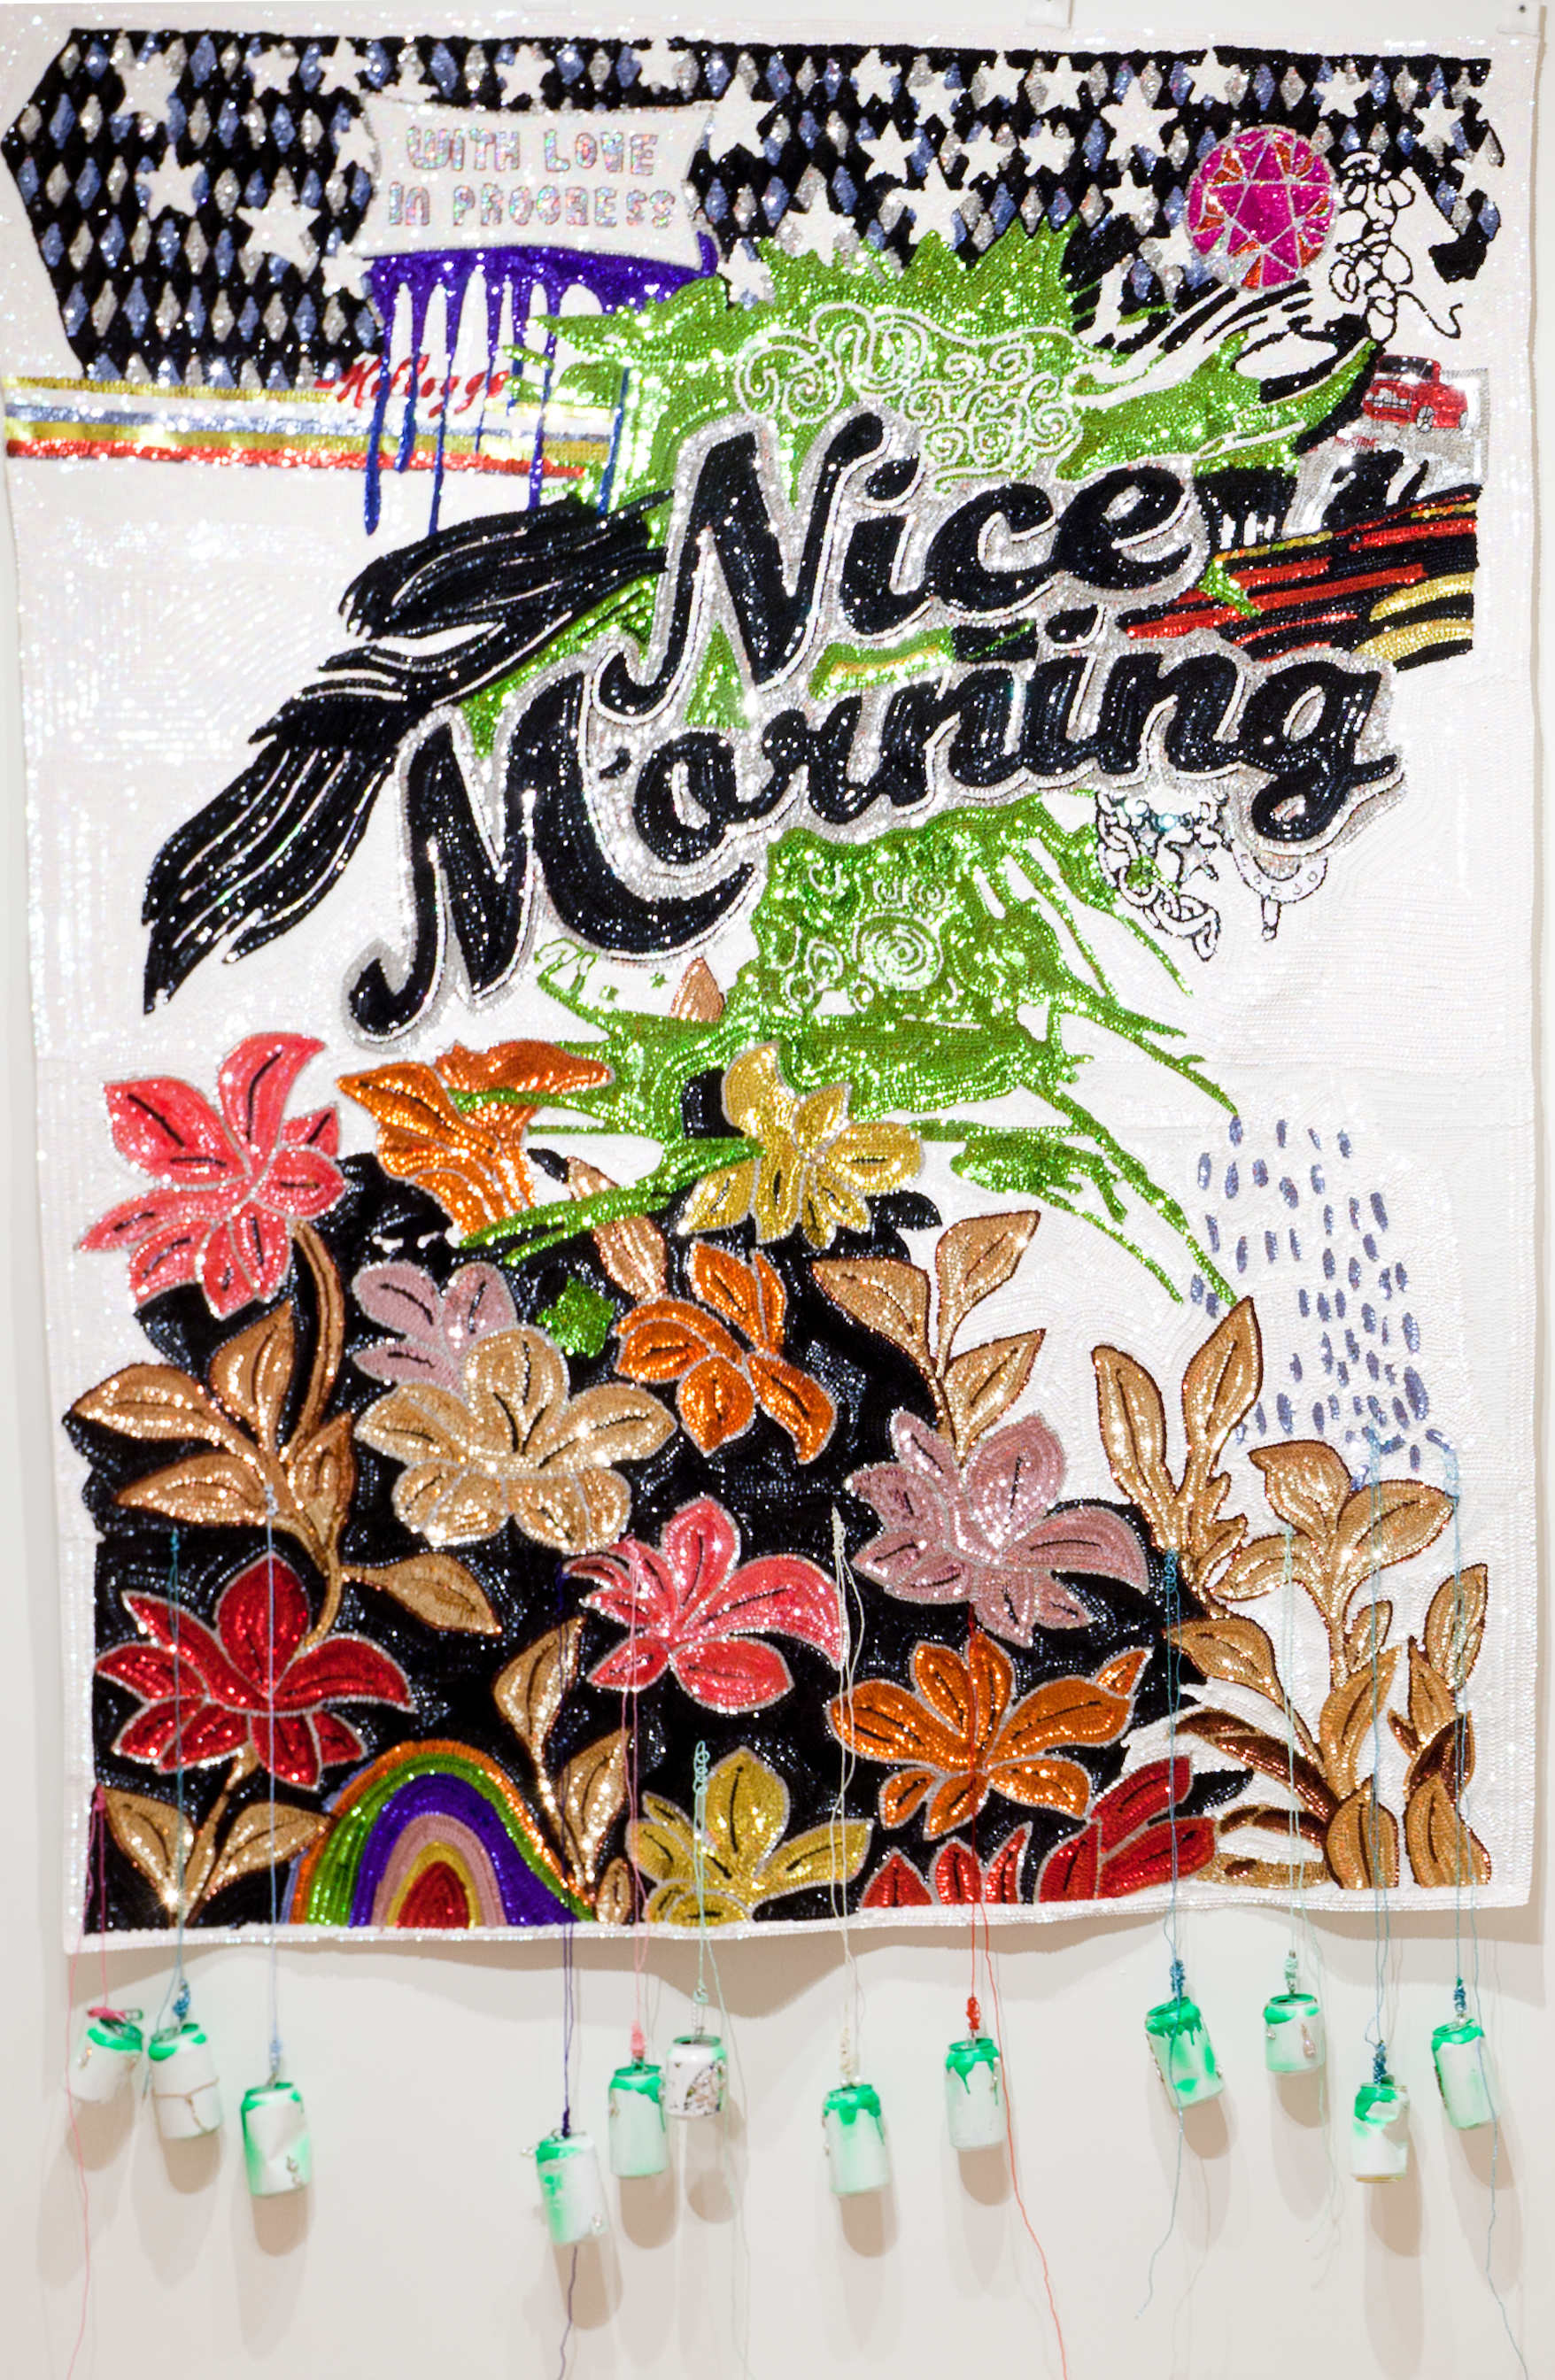 Daniel González,Nice Morning, 2011, hand-sewn sequins, pearls and cans, 230 x 160 cm